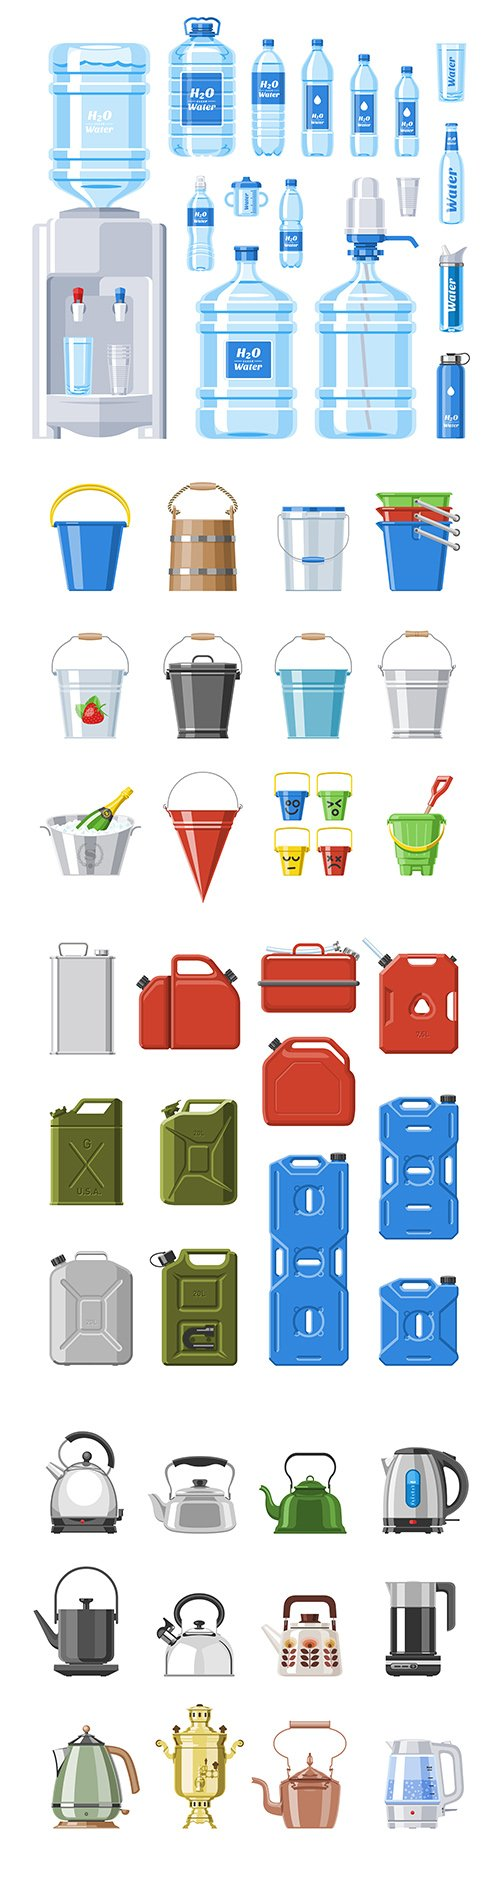 Bottle water, bucket and kettle collection vector illustrations